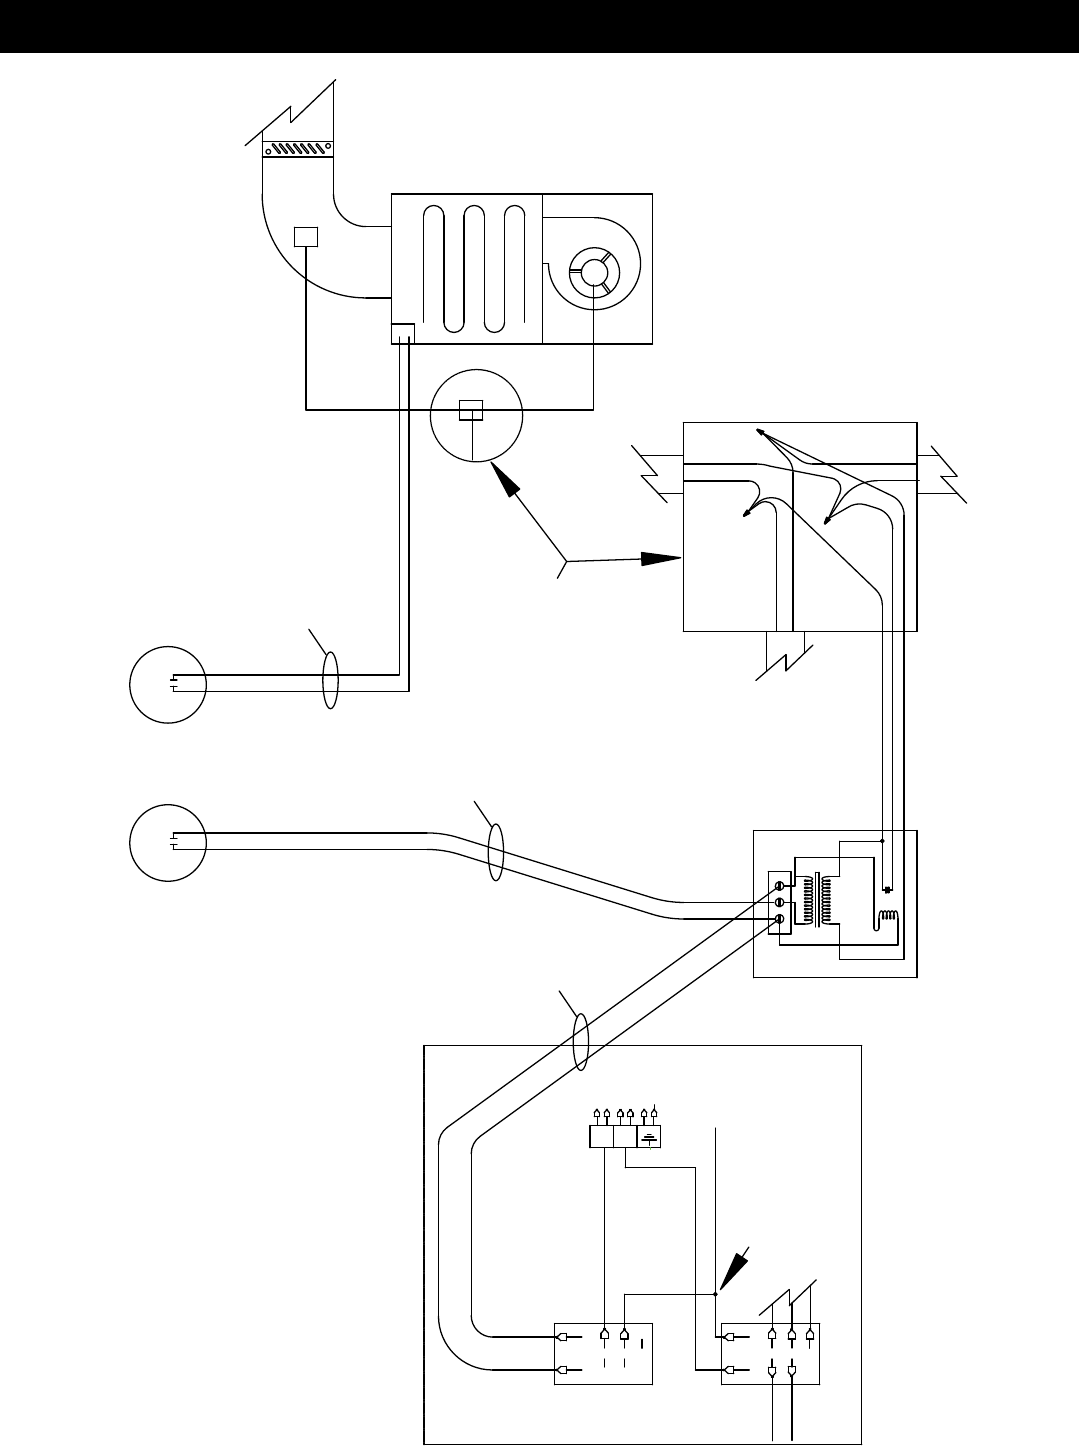 r8285a1048 wiring diagram wiring diagram Car Diagram r8285a1048 wiring diagram honeywell thermostat sub base wiring honeywell fan limit switch page 23 of heatiator